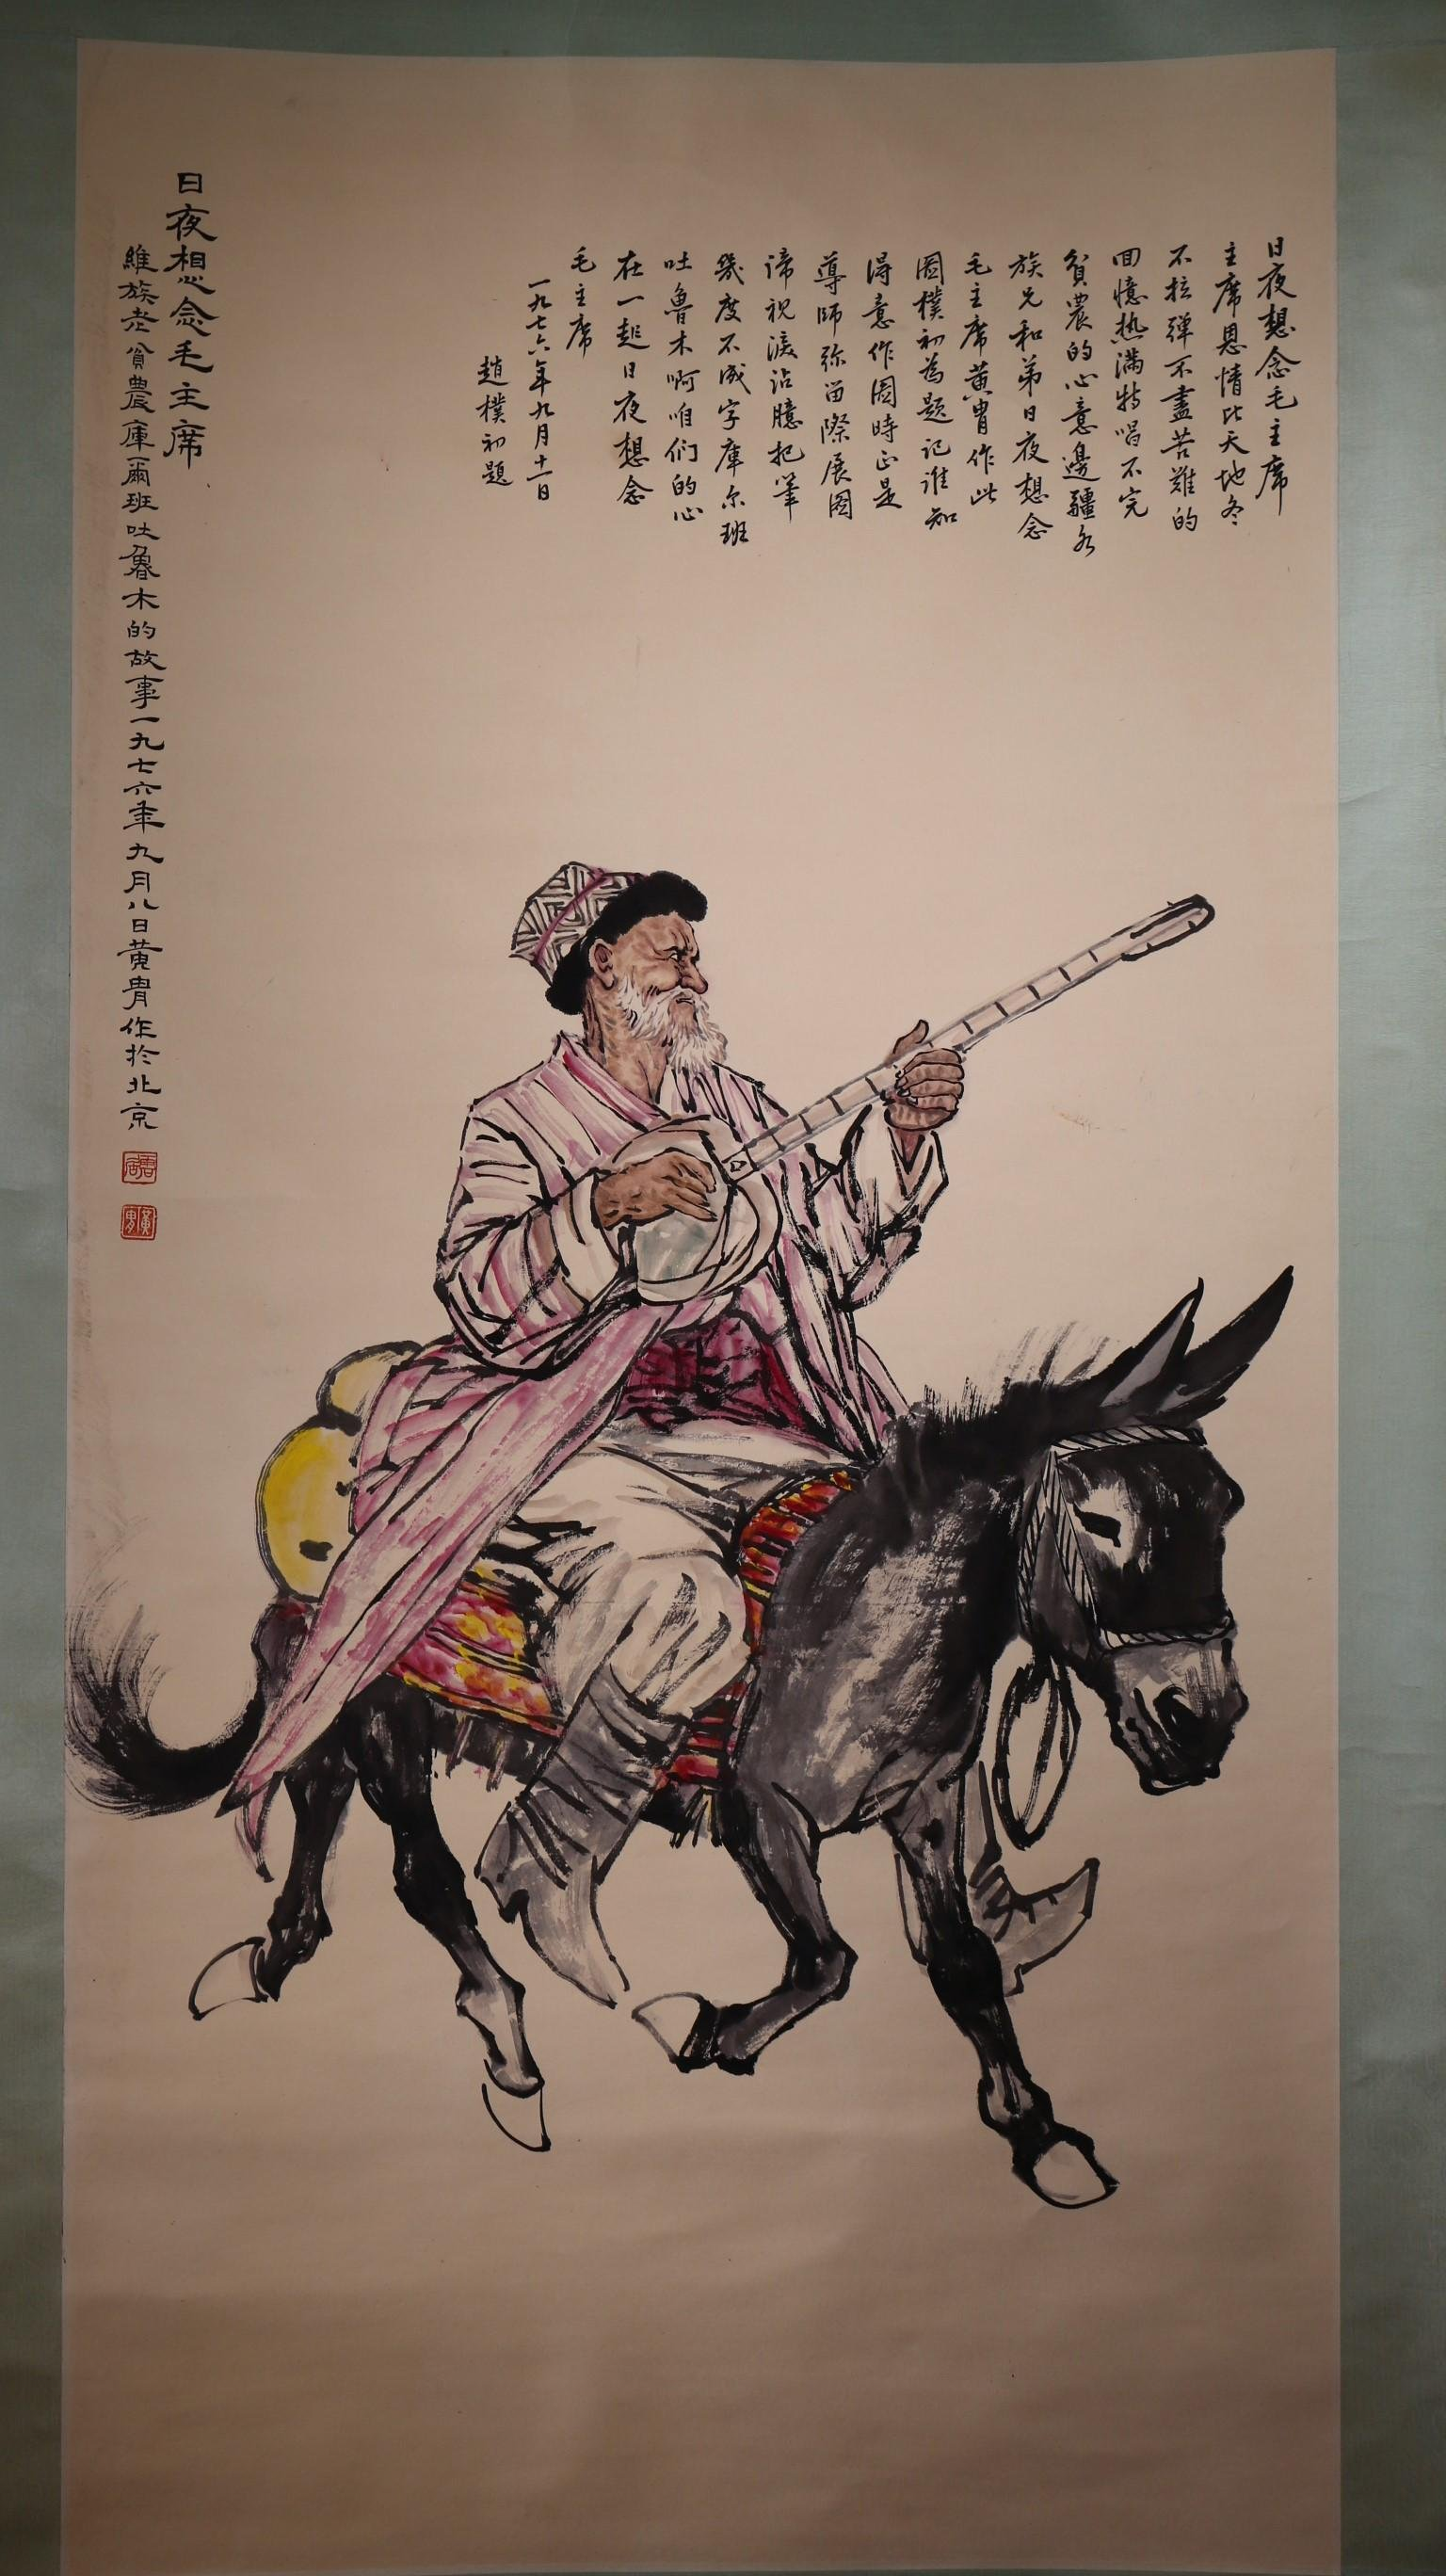 A Chinese Scrolled Painting, Signed Huang Zhou